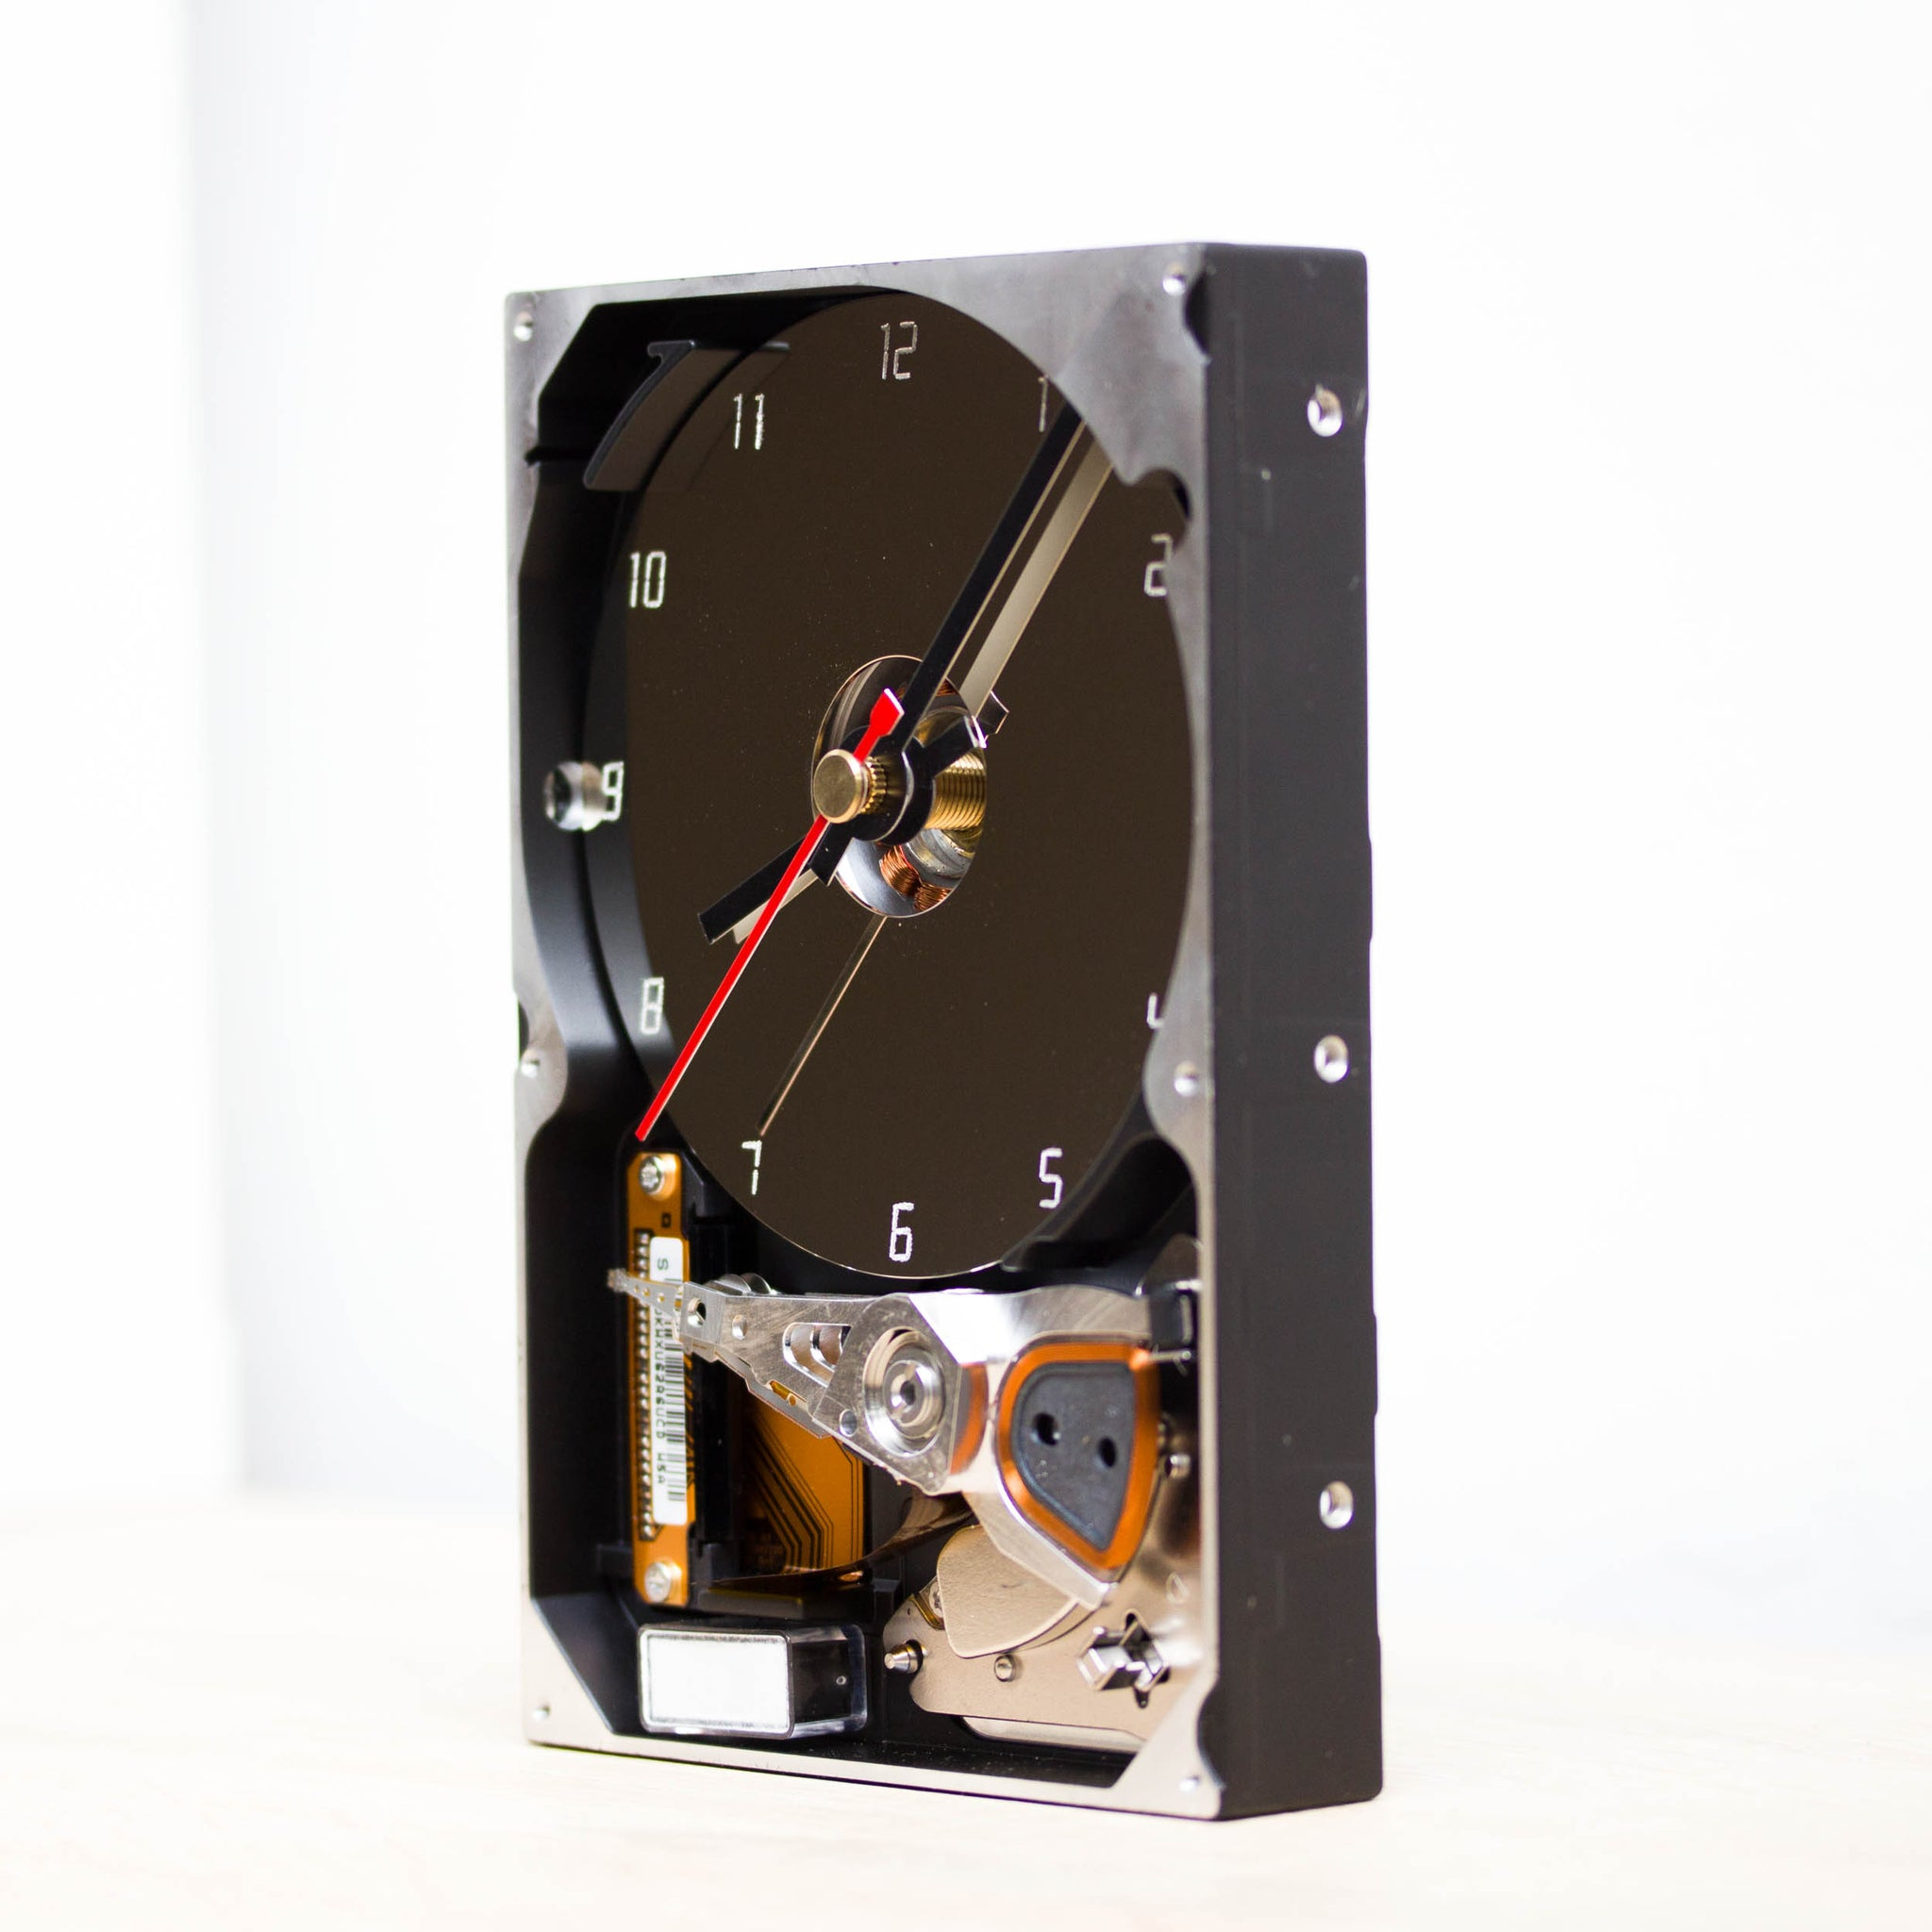 Geeky desk clock made of recycled HDD drive